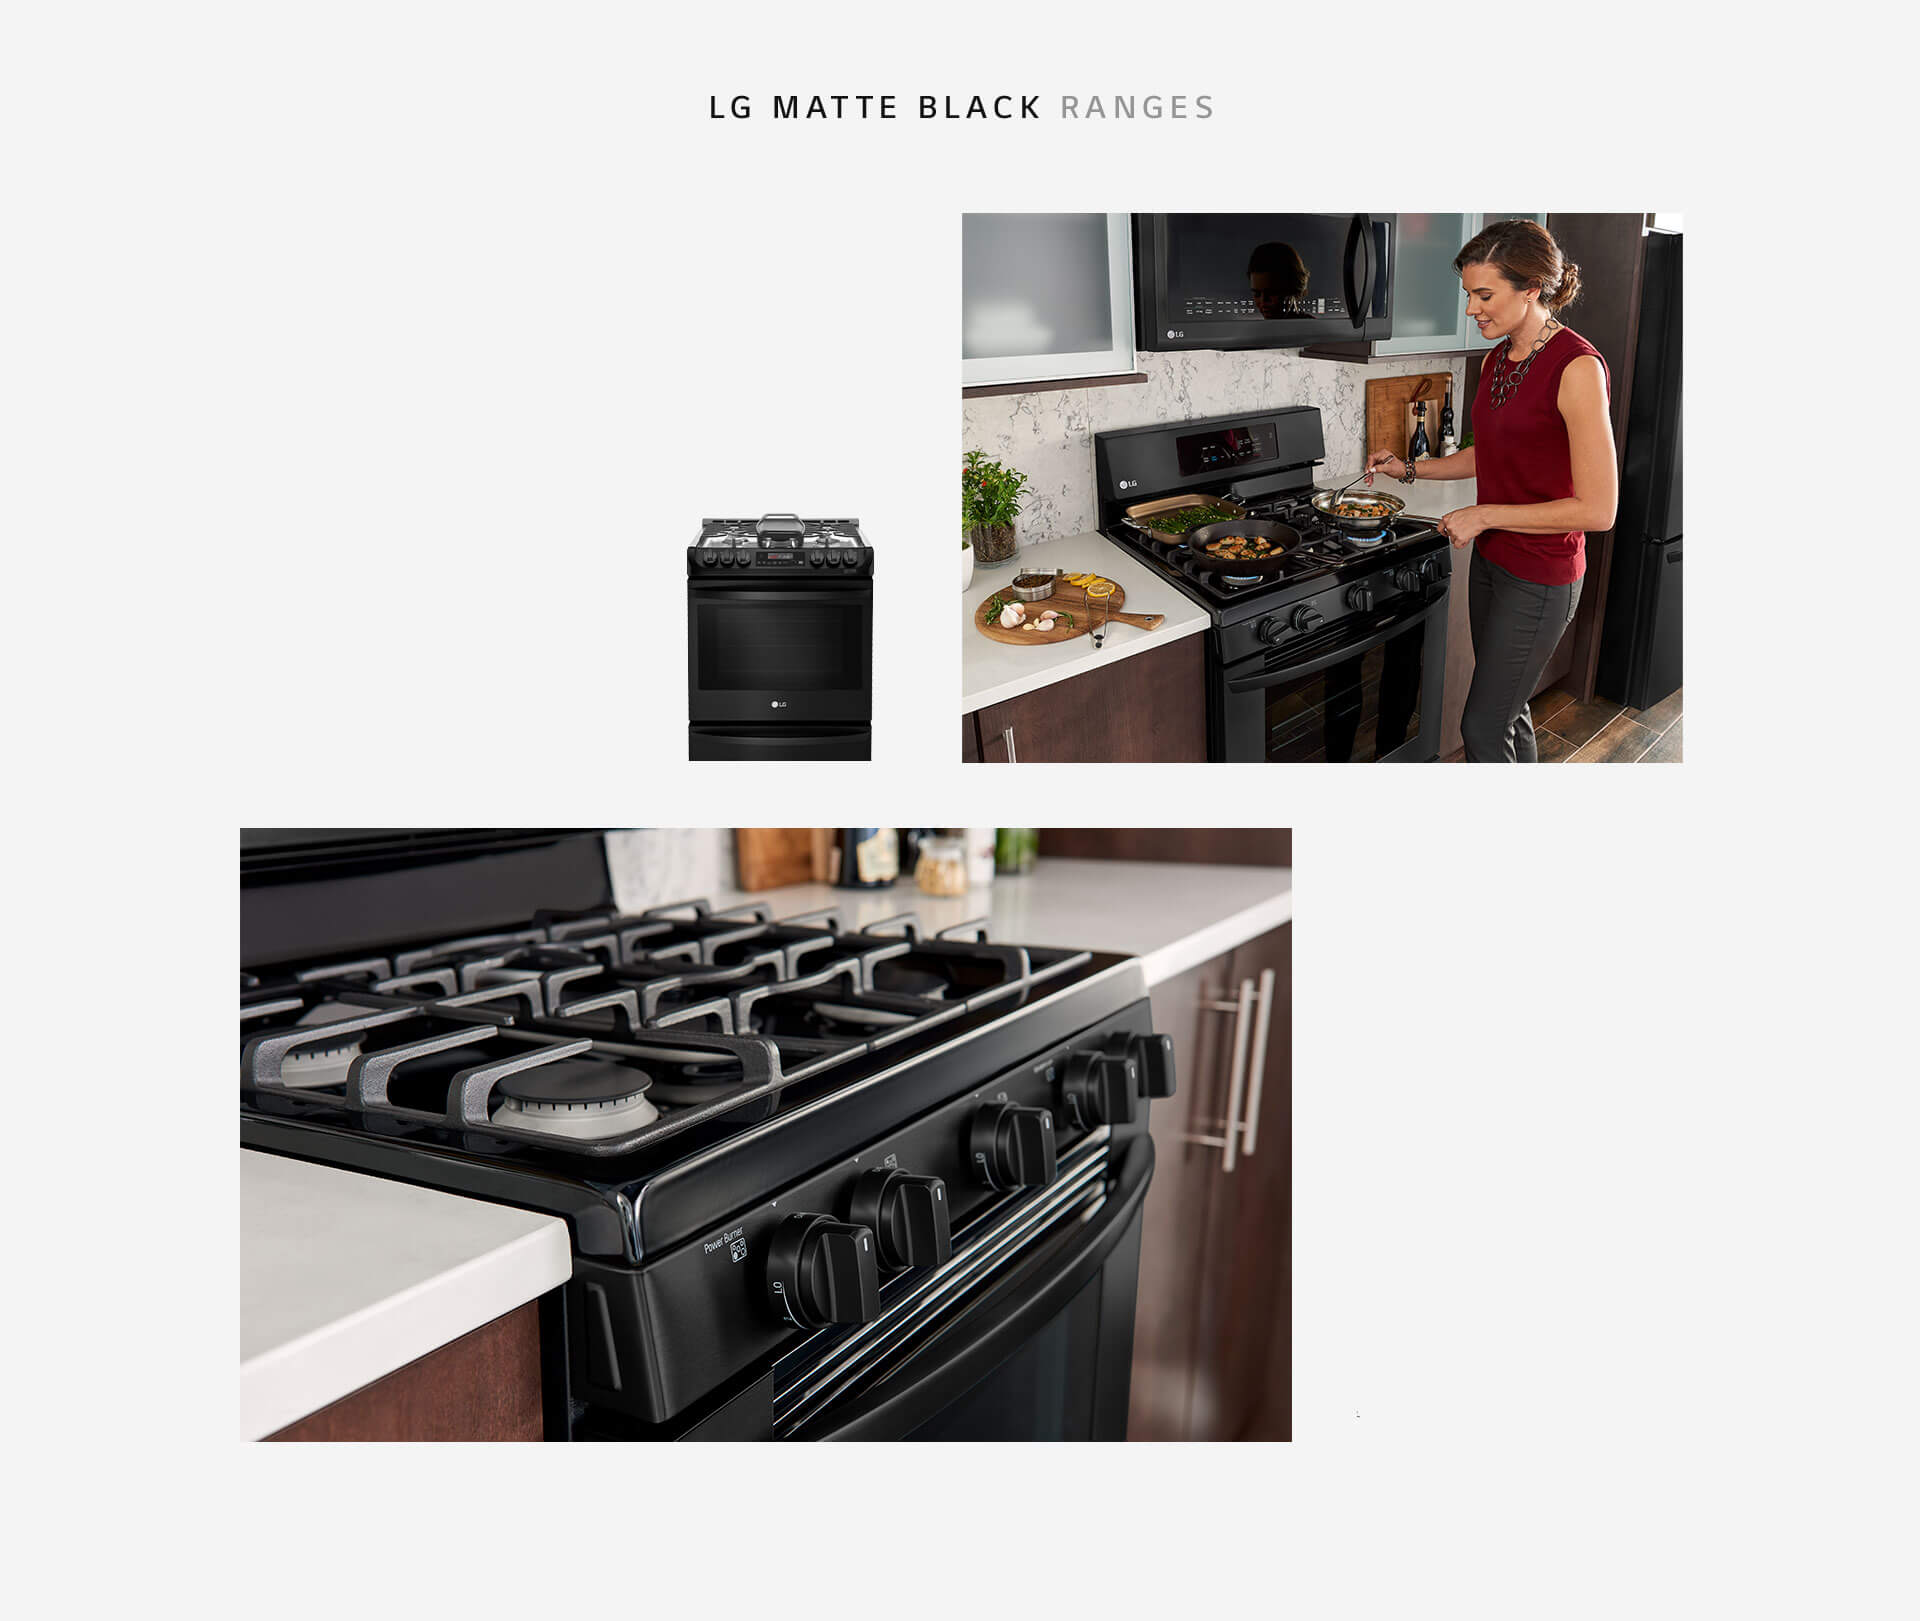 LG Matte Black Stainless Steel: Embrace The Dark Side